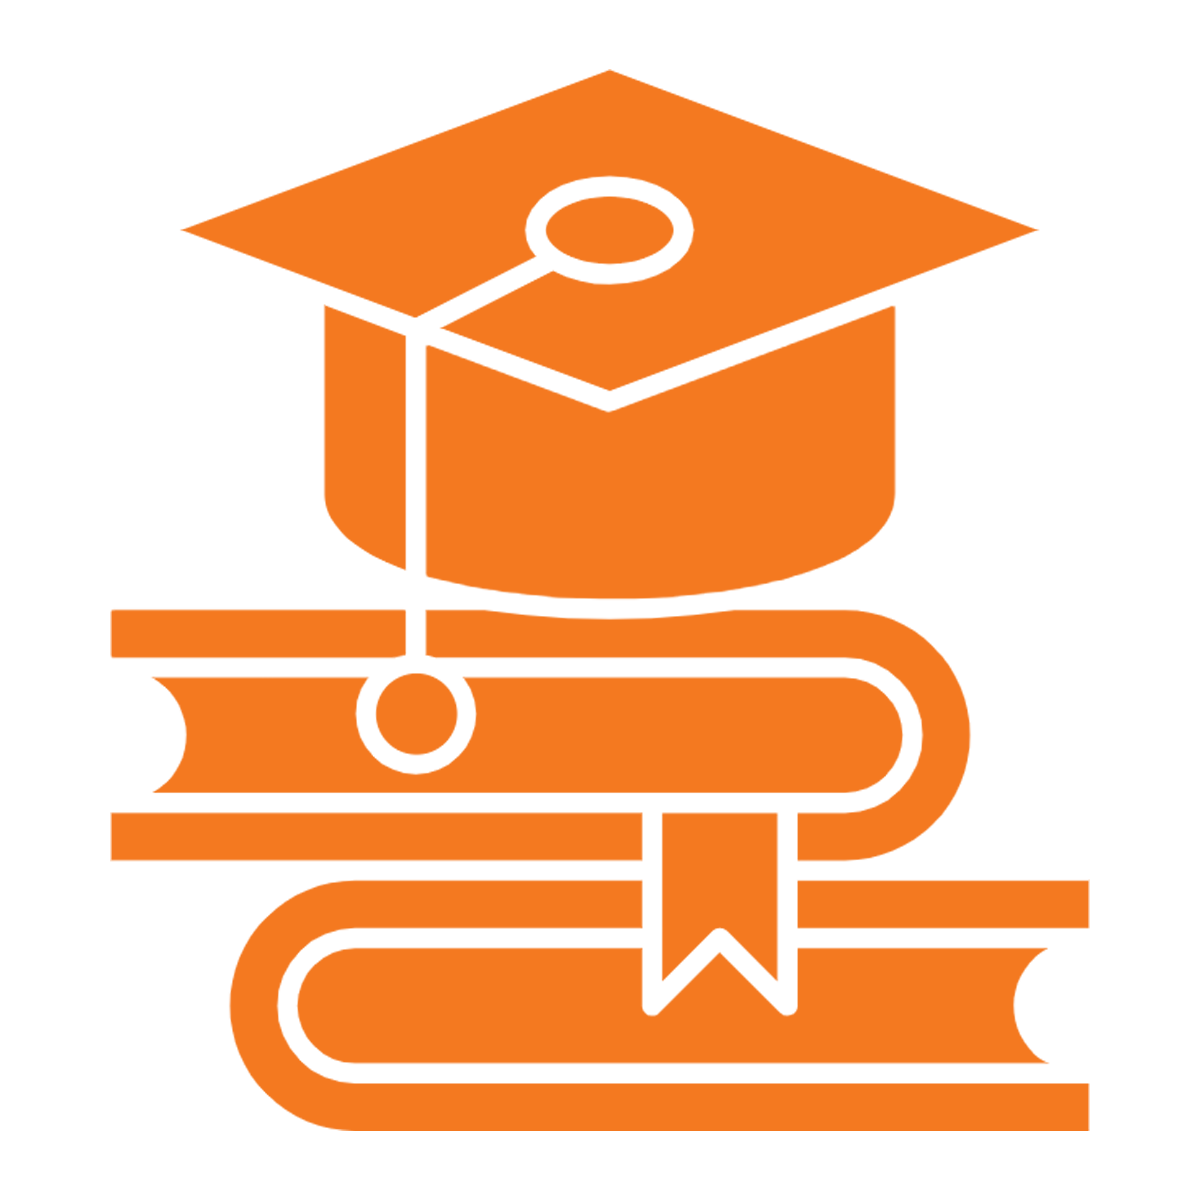 ScanSourceGoRemote_WorkplacesoftheFuture_Education_Orange_Icon